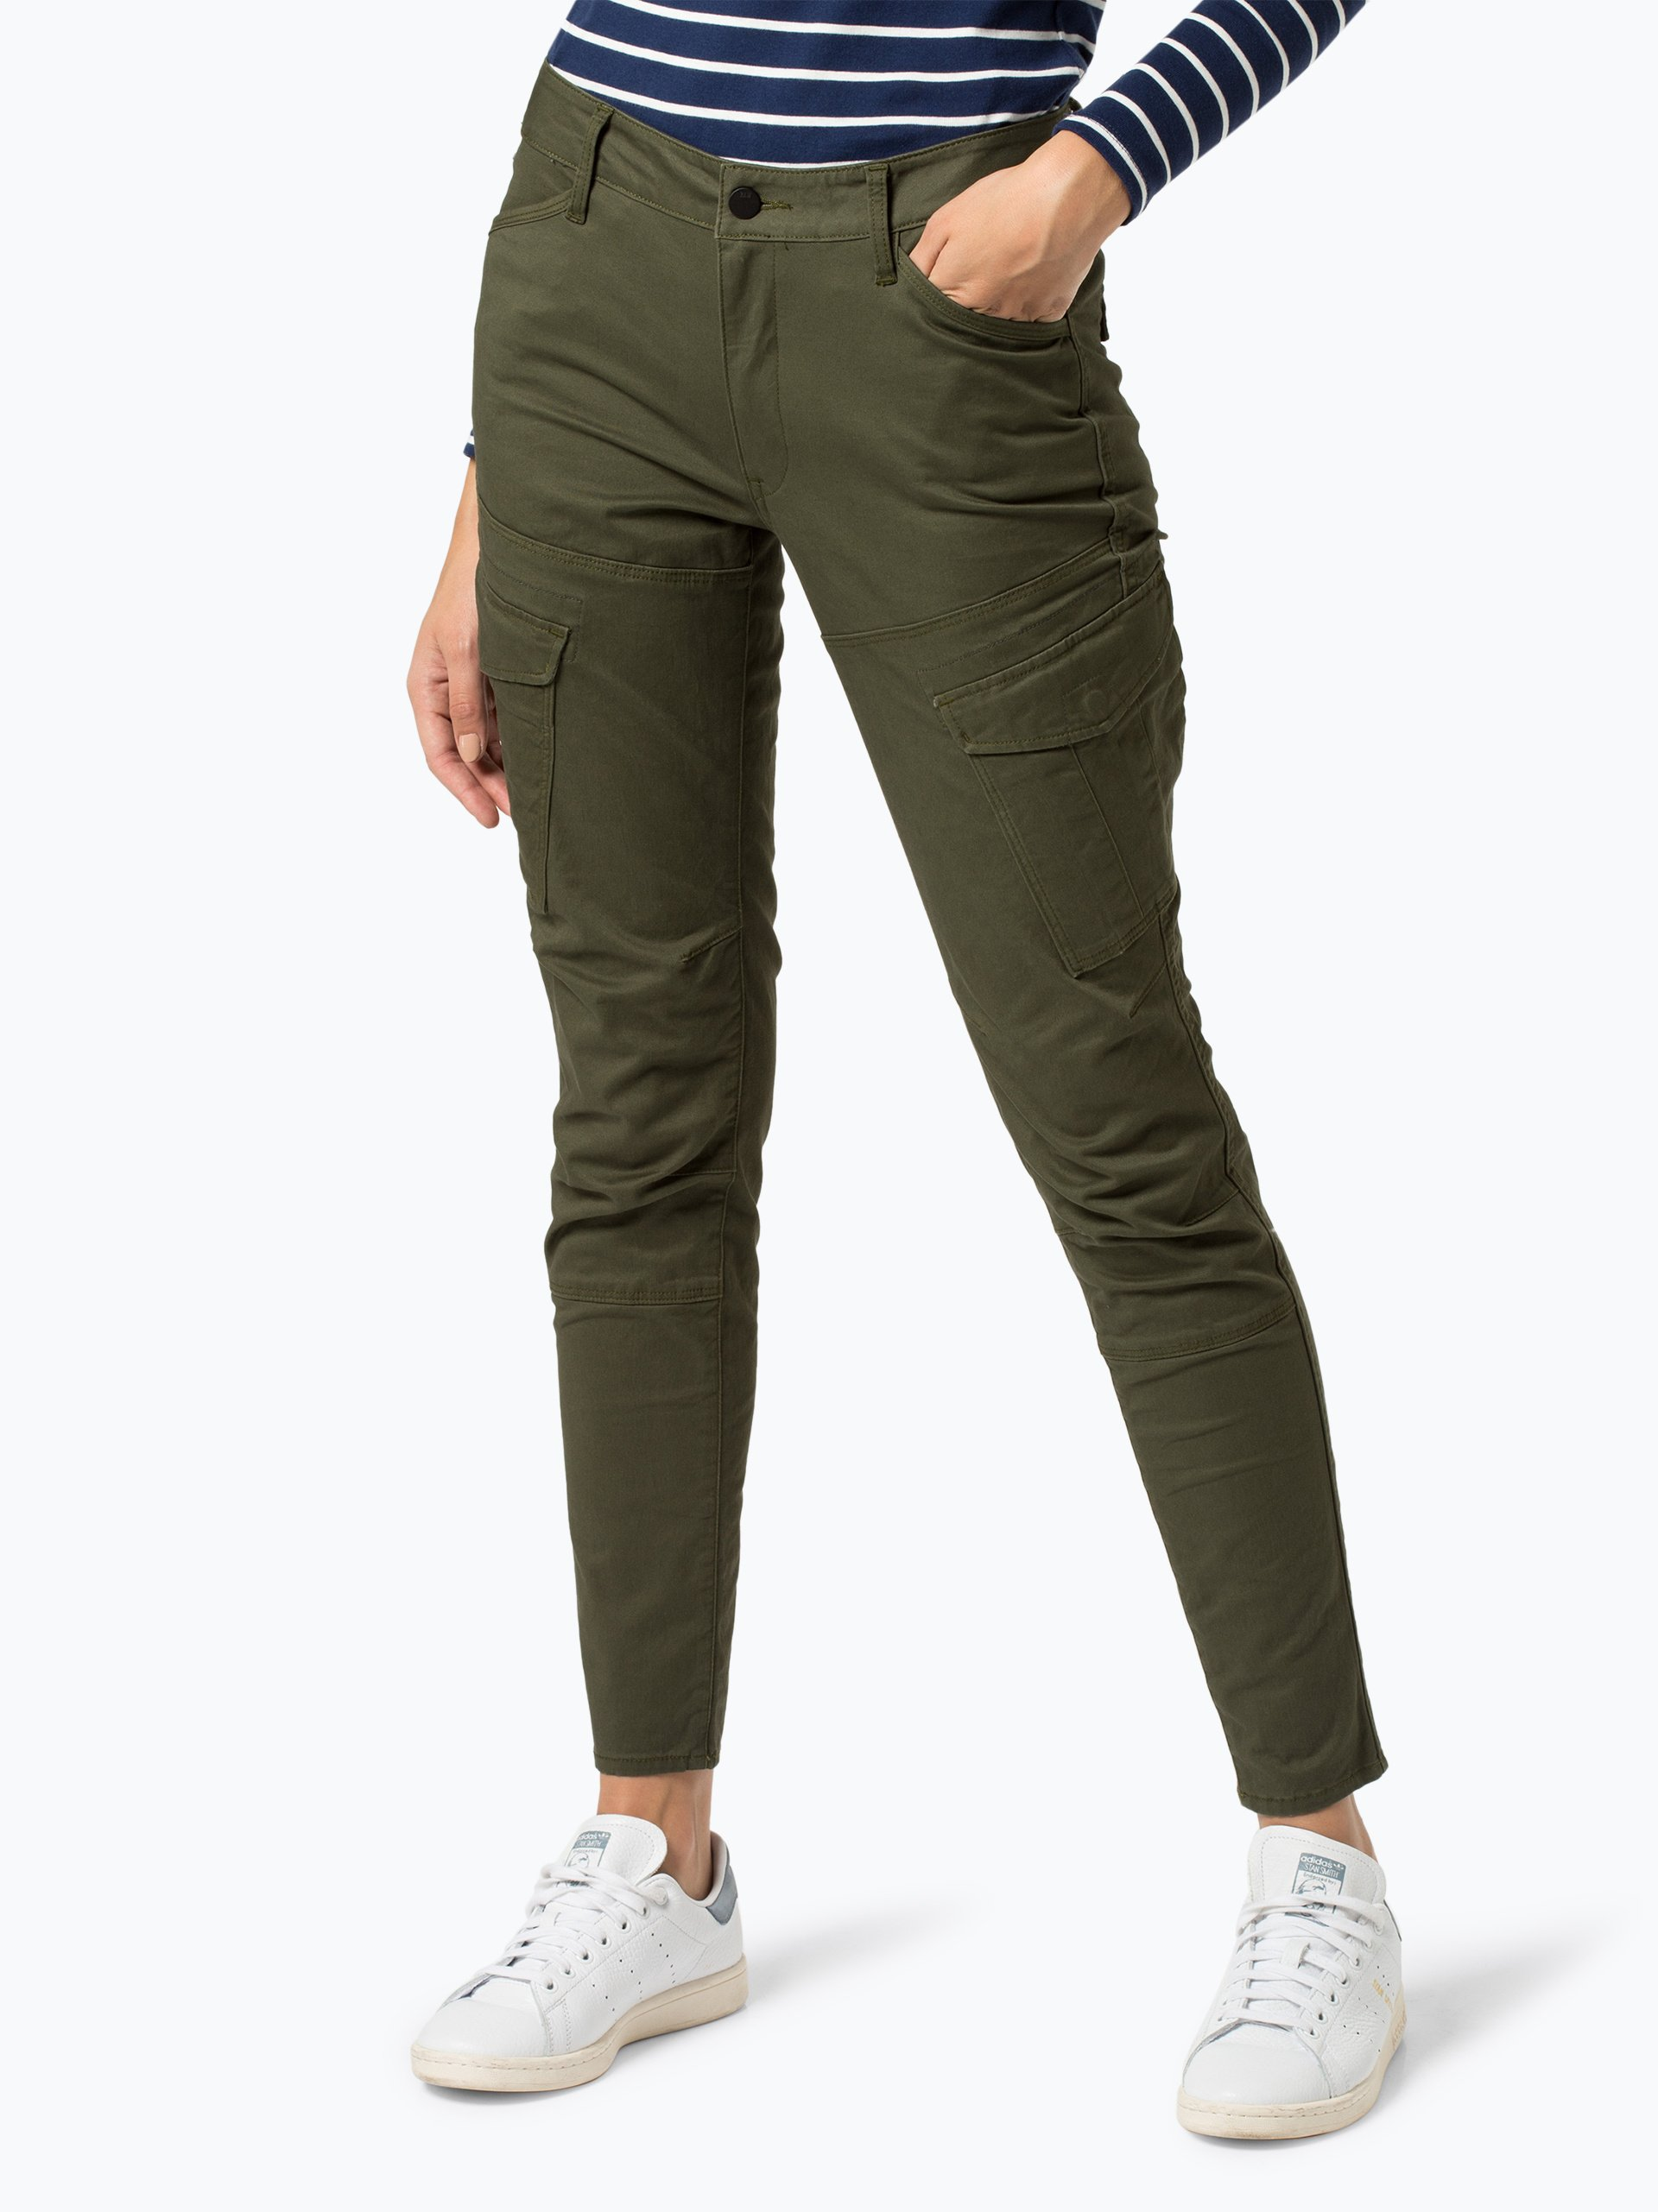 G-Star Damen Hose - Rovic